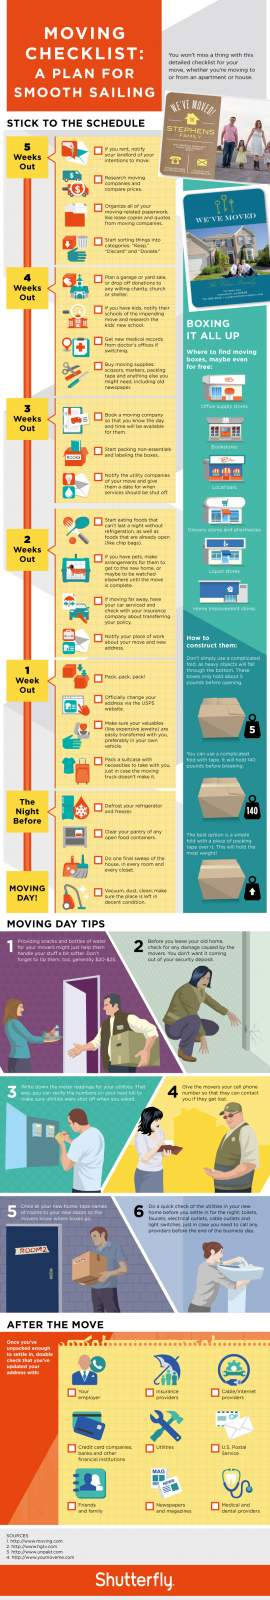 printable moving checklist and